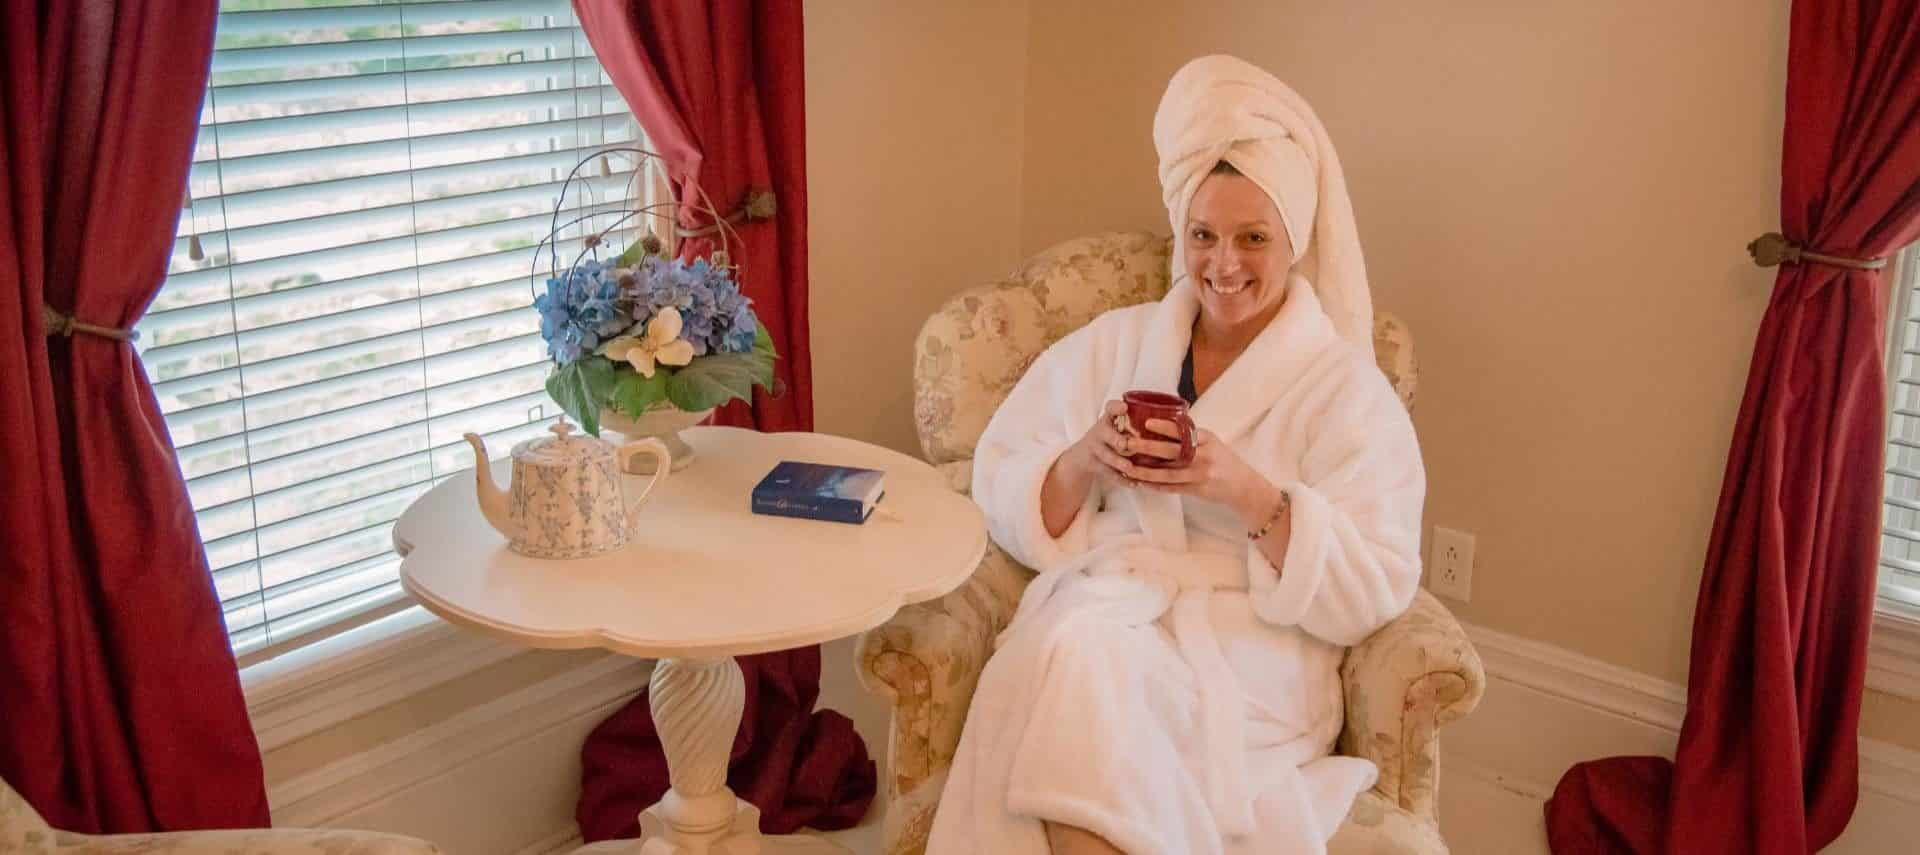 Woman in white robe with white towel on head relaxing in a chair drinking a cup of coffee